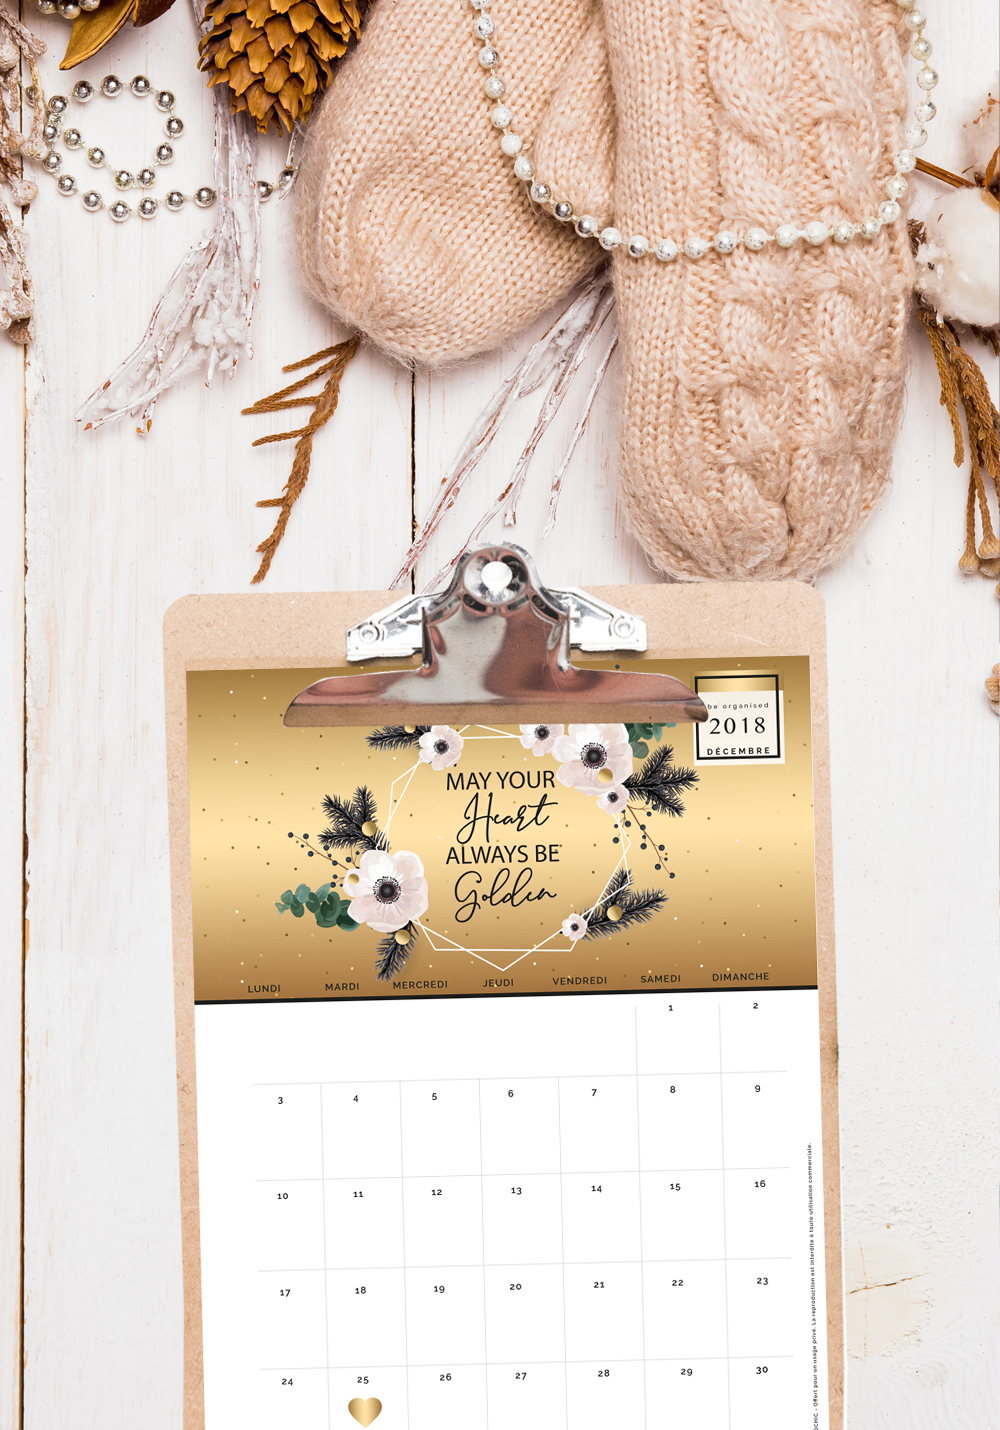 Air Chic Design:disque externe:EXOChic:1 -POSTS:1 - ARTICLES:2018:12 - DECEMBRE:01 -CALENDRIER FOND ECRAN:image blog:fond ecran calendrier decembre exochic chic and pepper 1.jpg